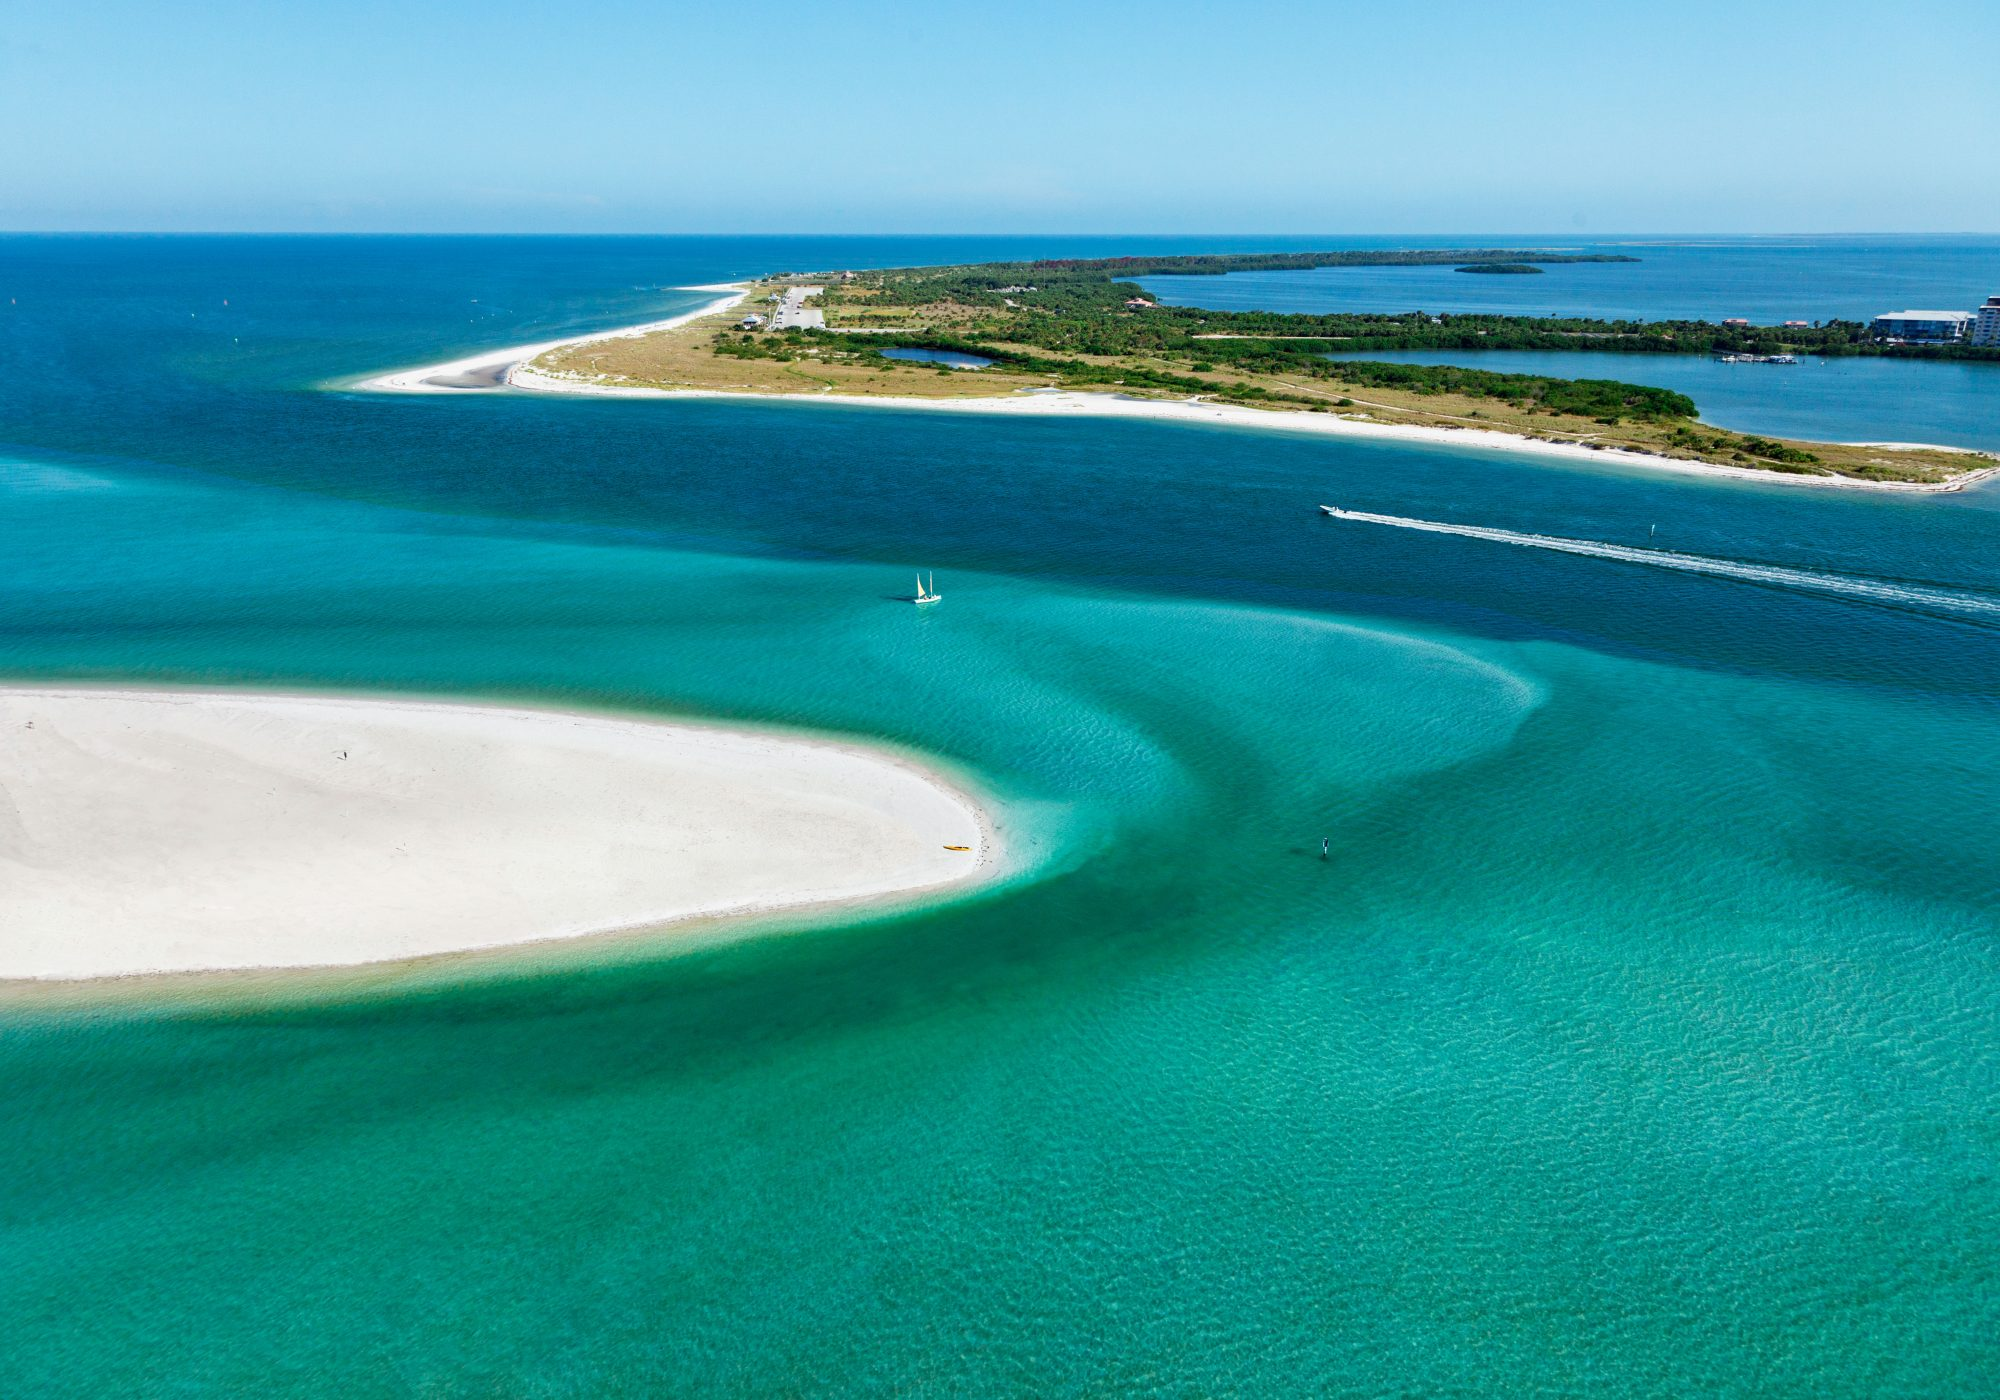 Clearwater: Caladesi Island State Park and Honeymoon Island State Park